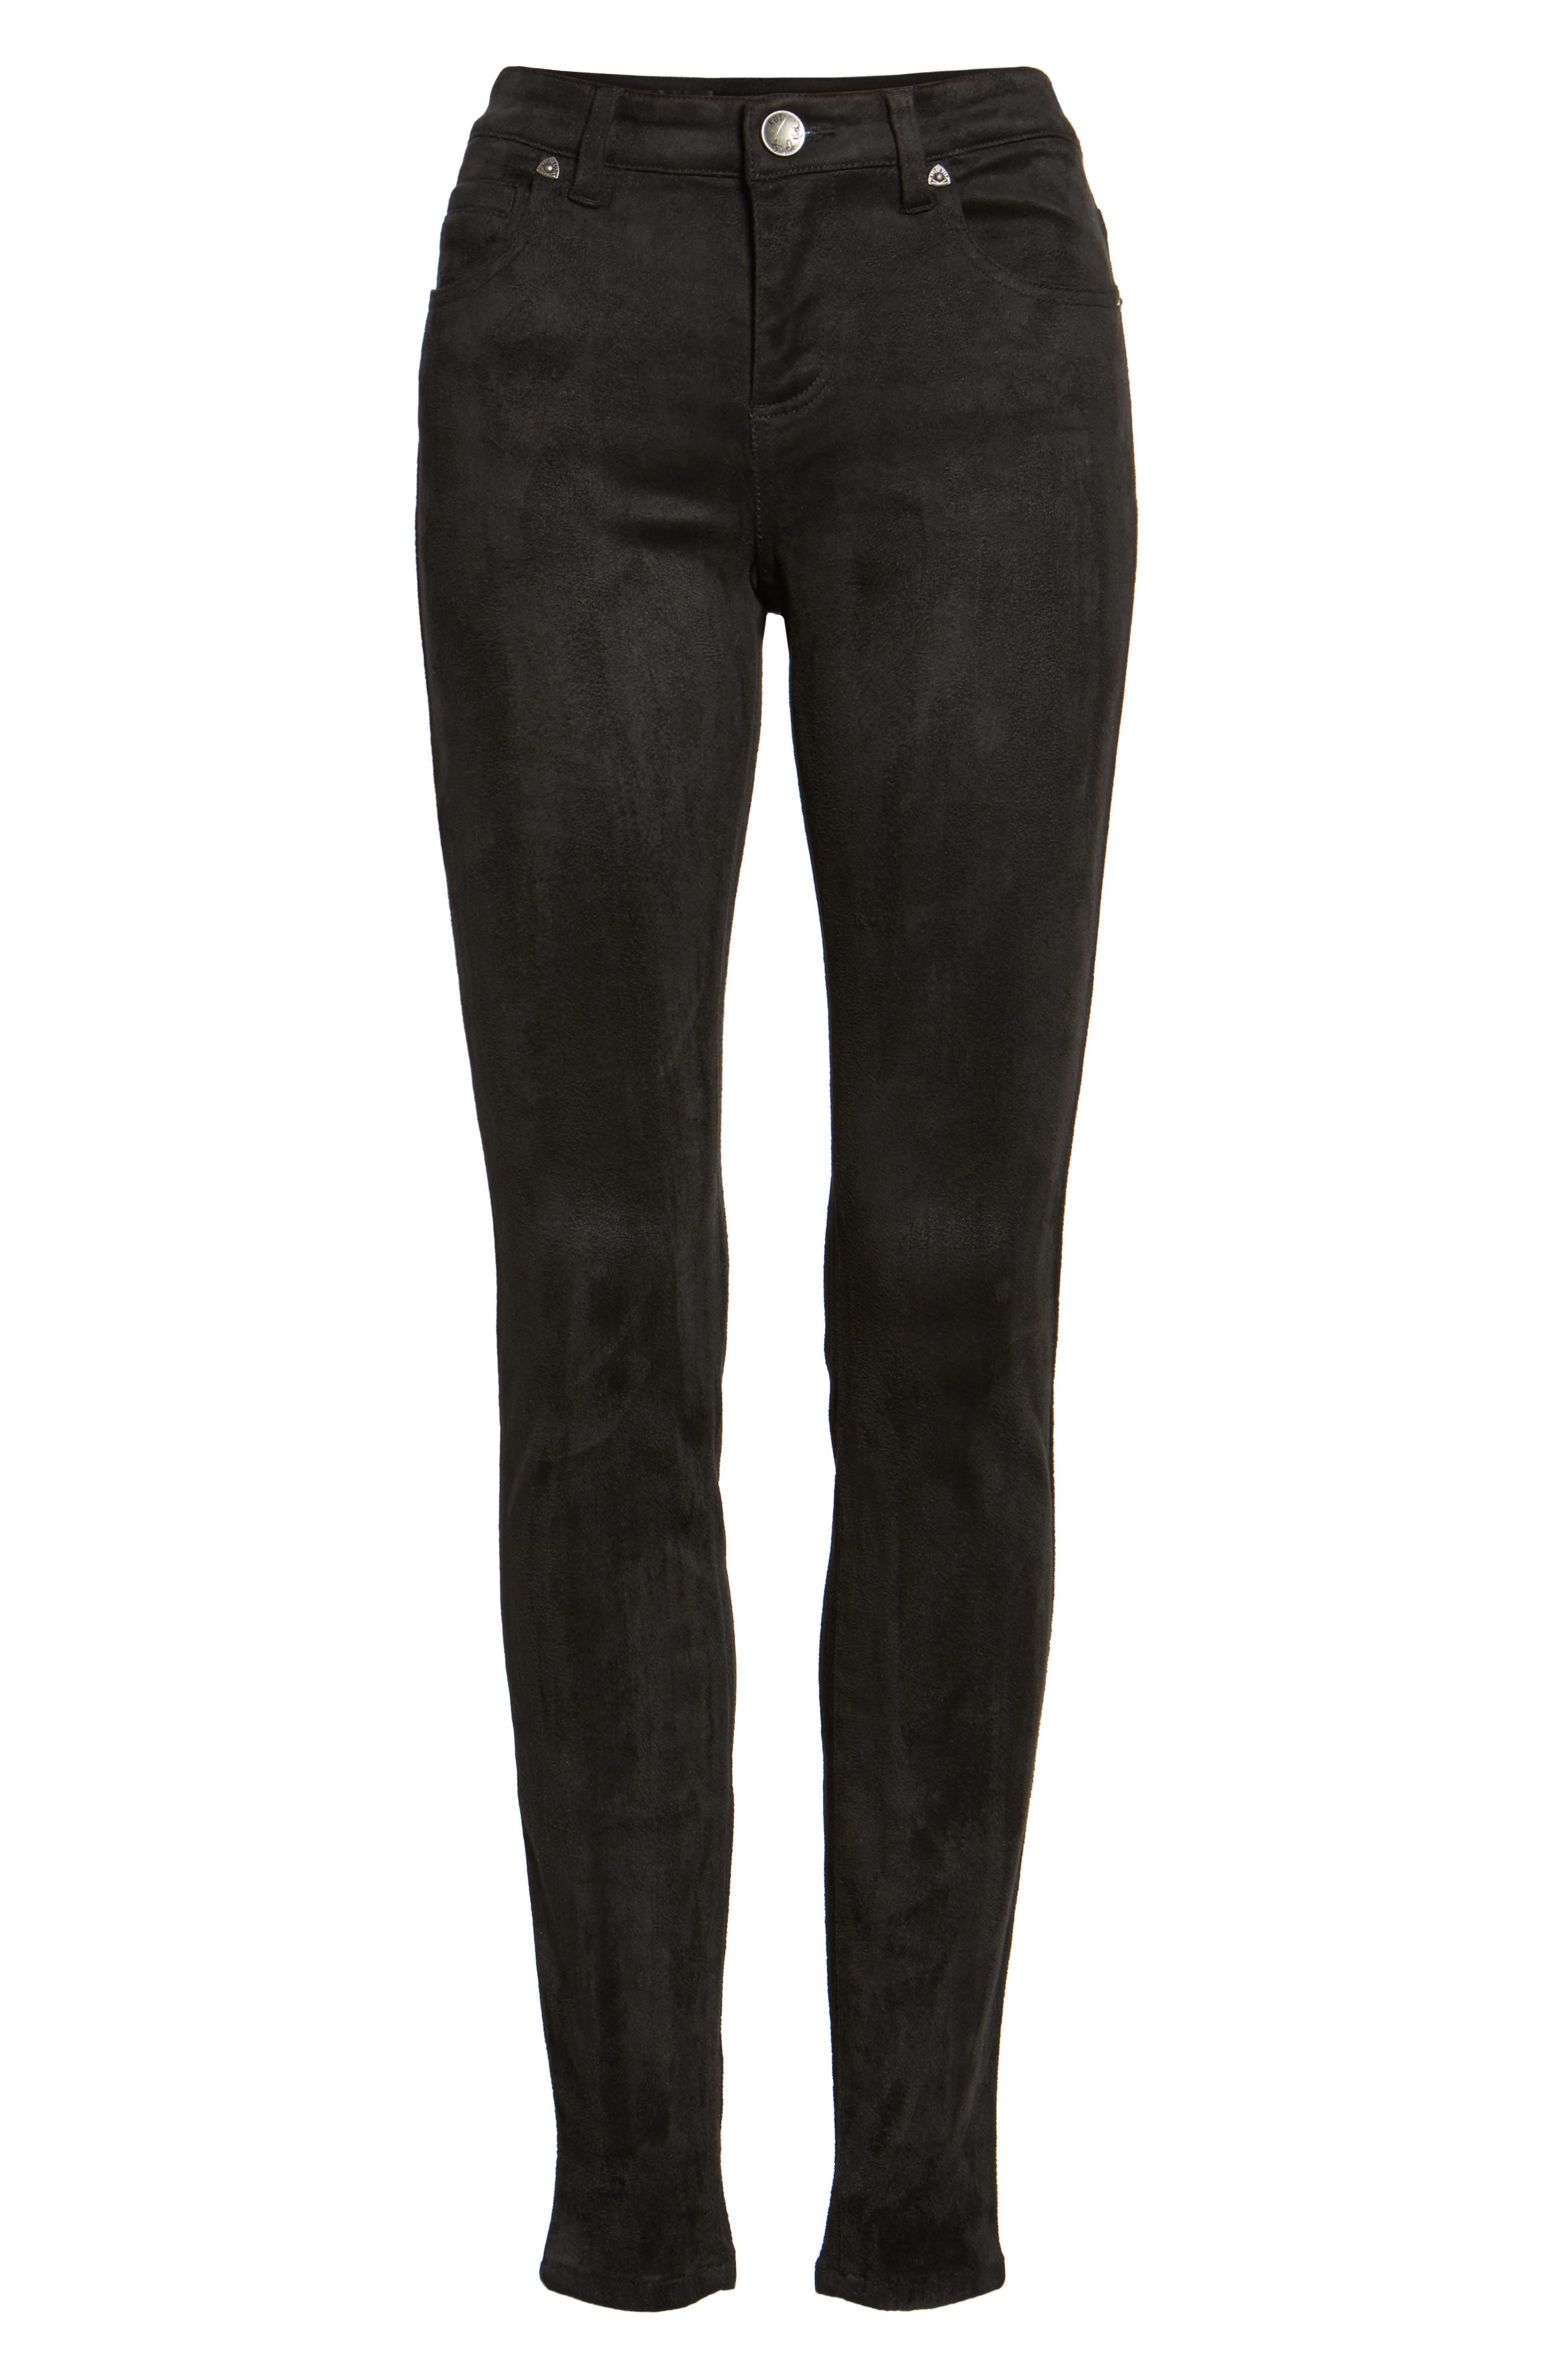 Mia Faux Suede Skinny Jeans,                             Alternate thumbnail 6, color,                             002